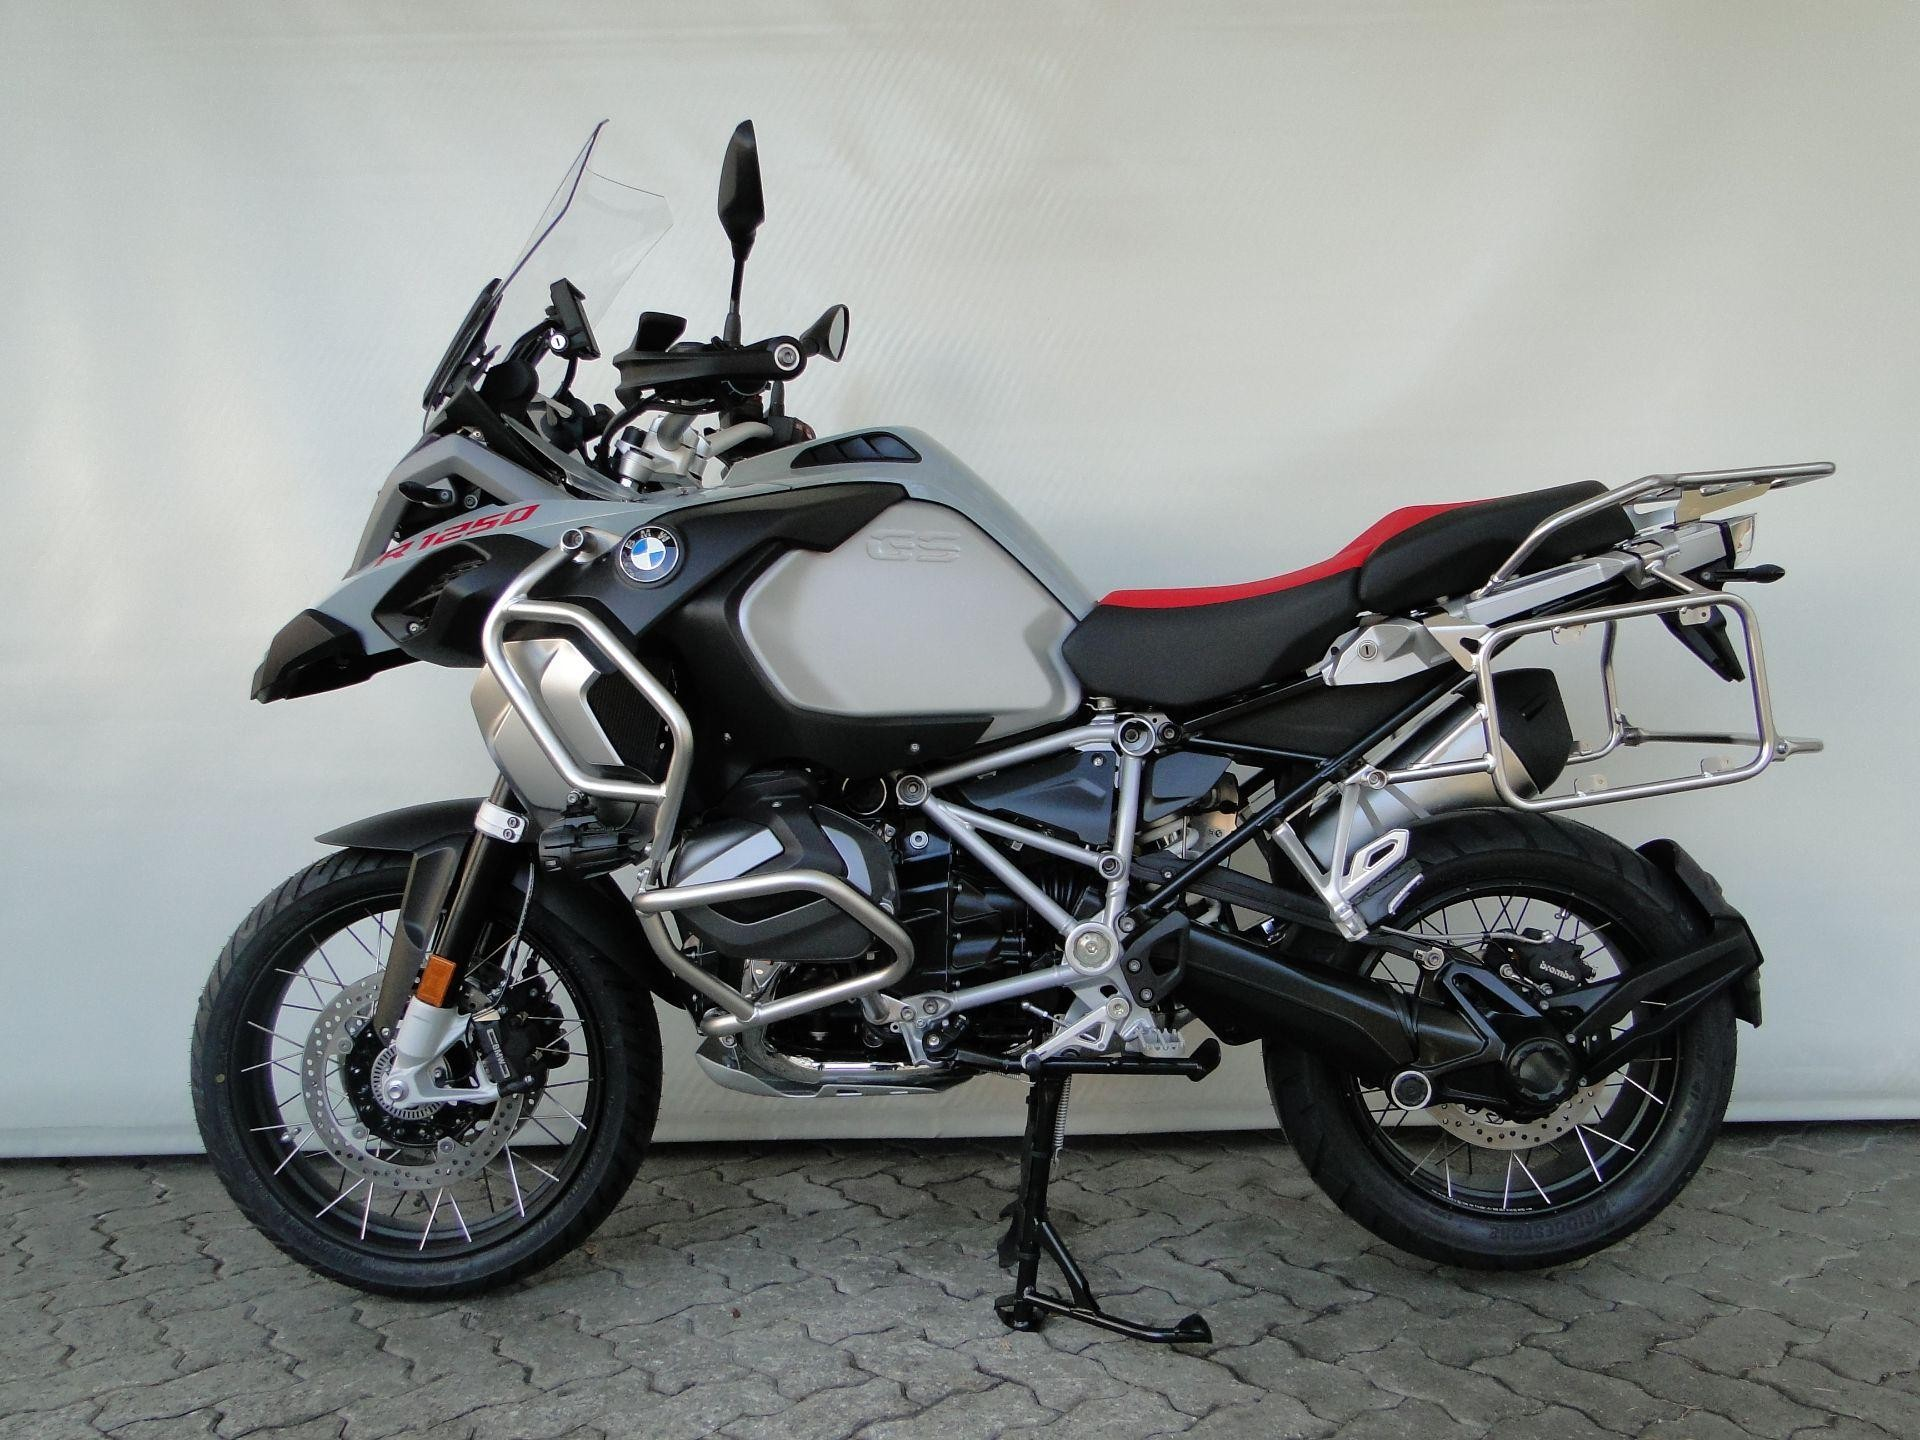 moto modello da dimostrazione acquistare bmw r 1250 gs. Black Bedroom Furniture Sets. Home Design Ideas